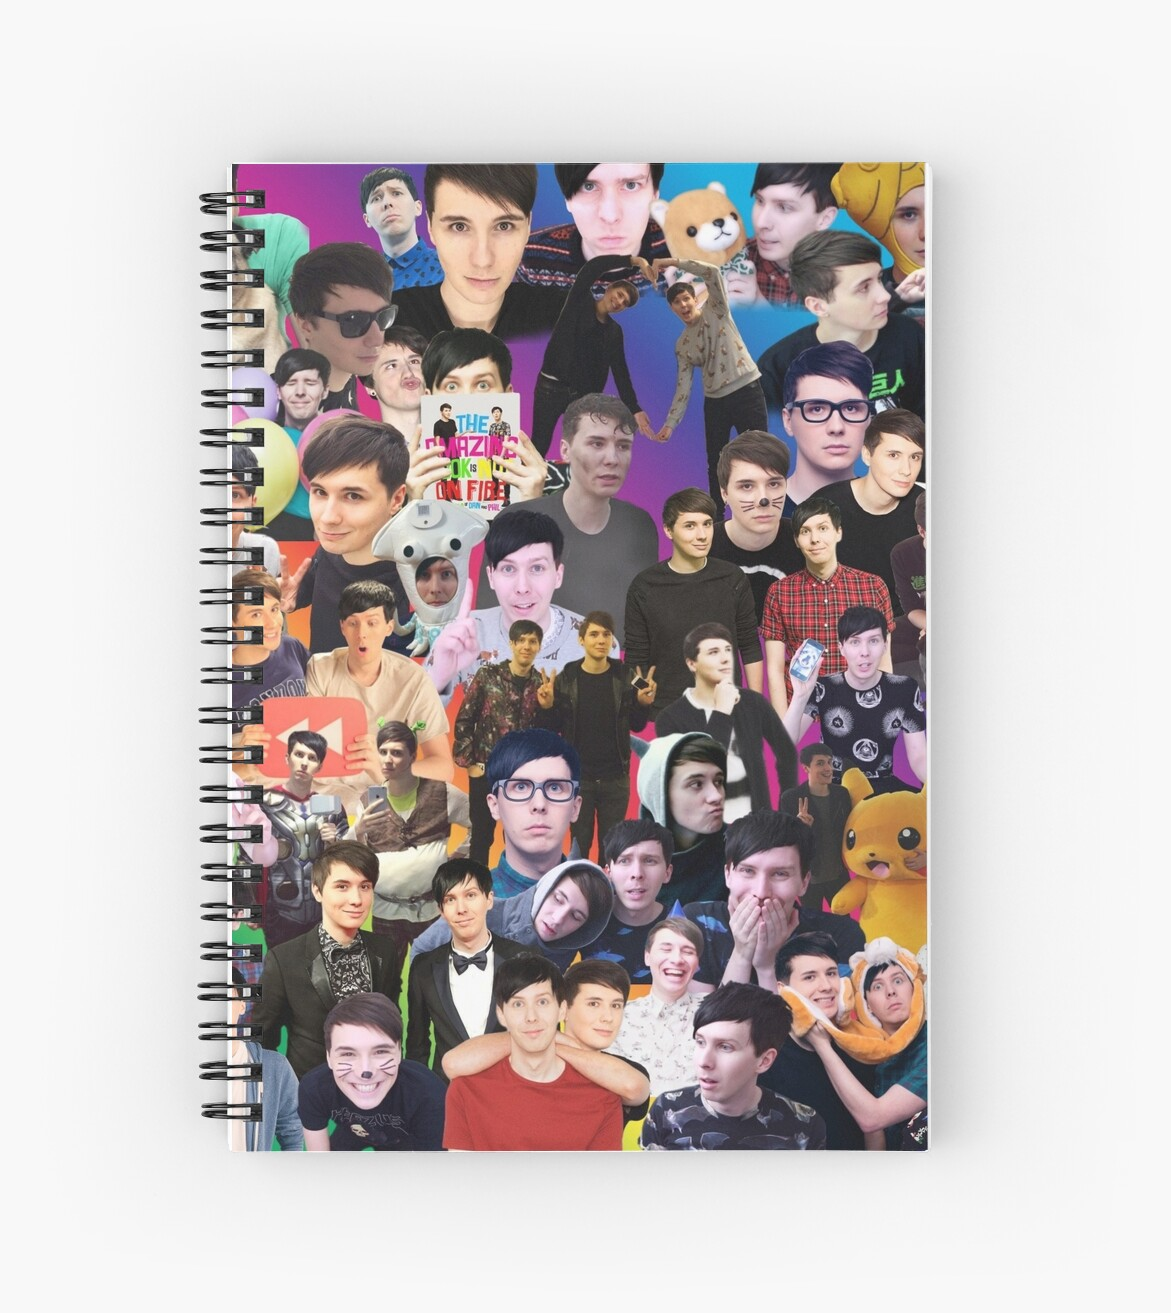 Phan Collage #3 by Molly Smith